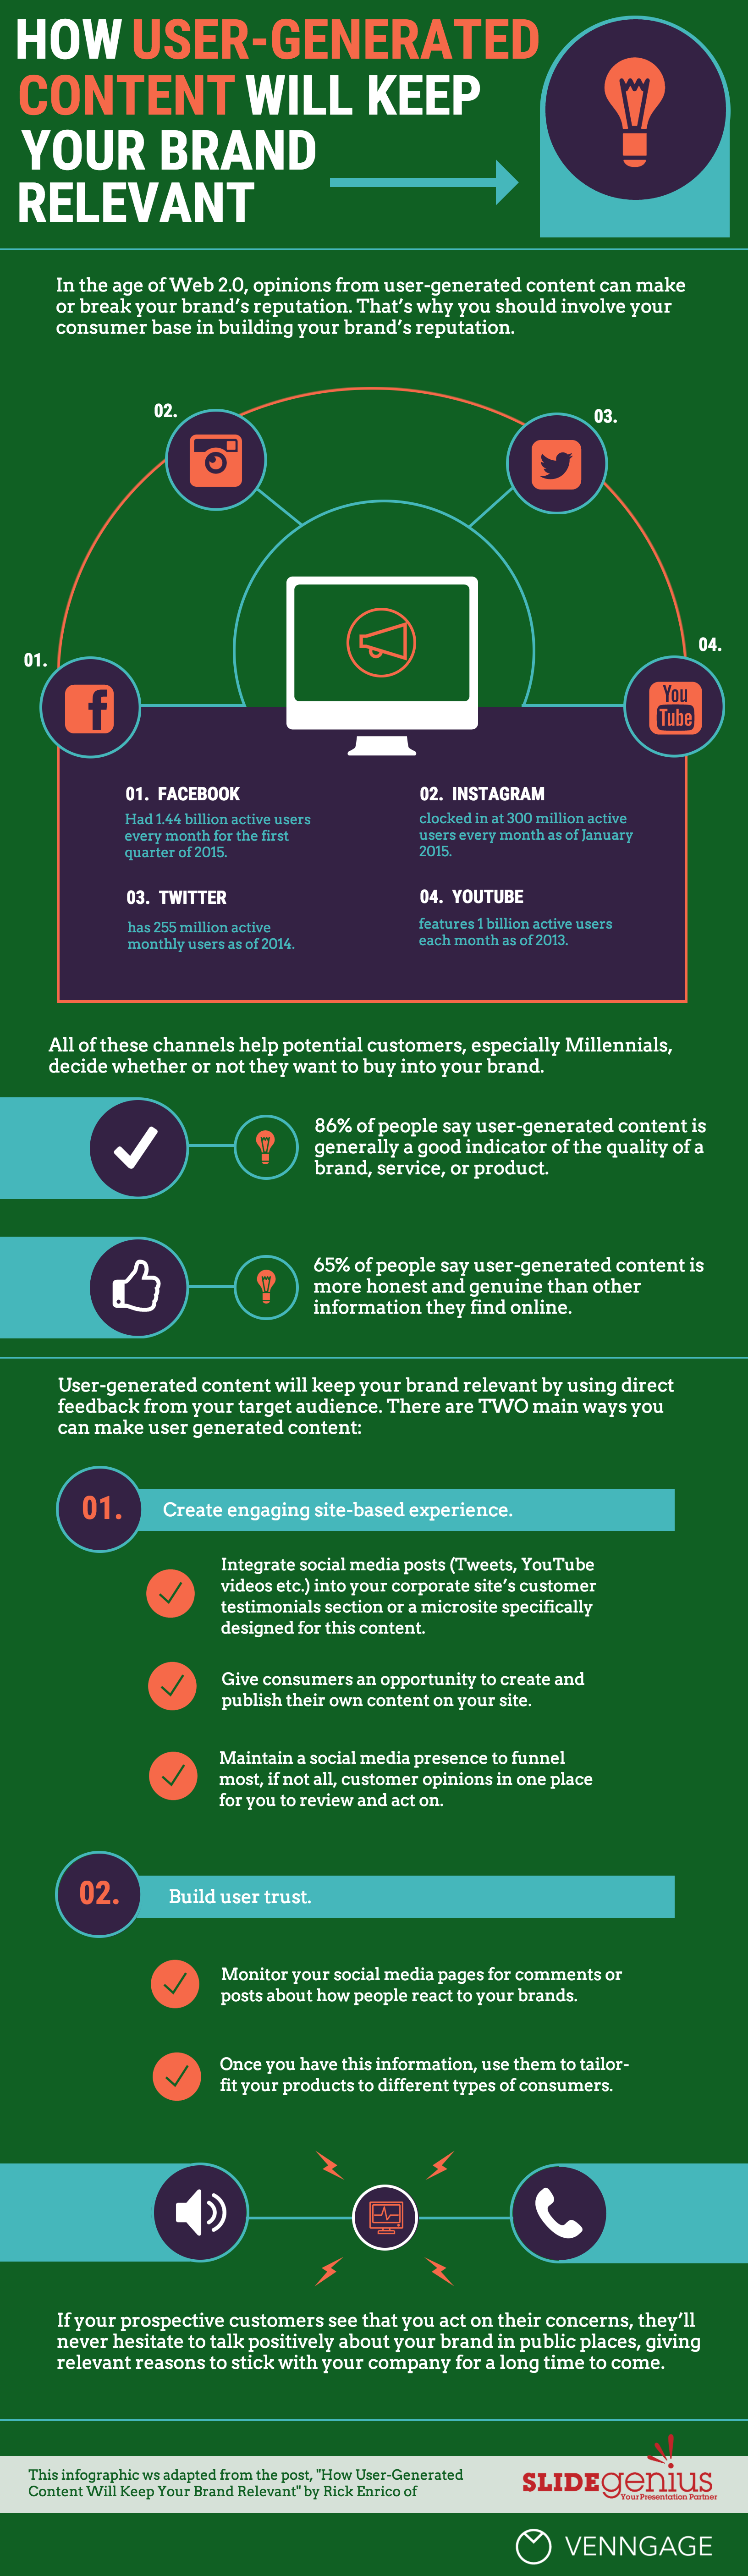 Infographic: User Generated Content | Venngage